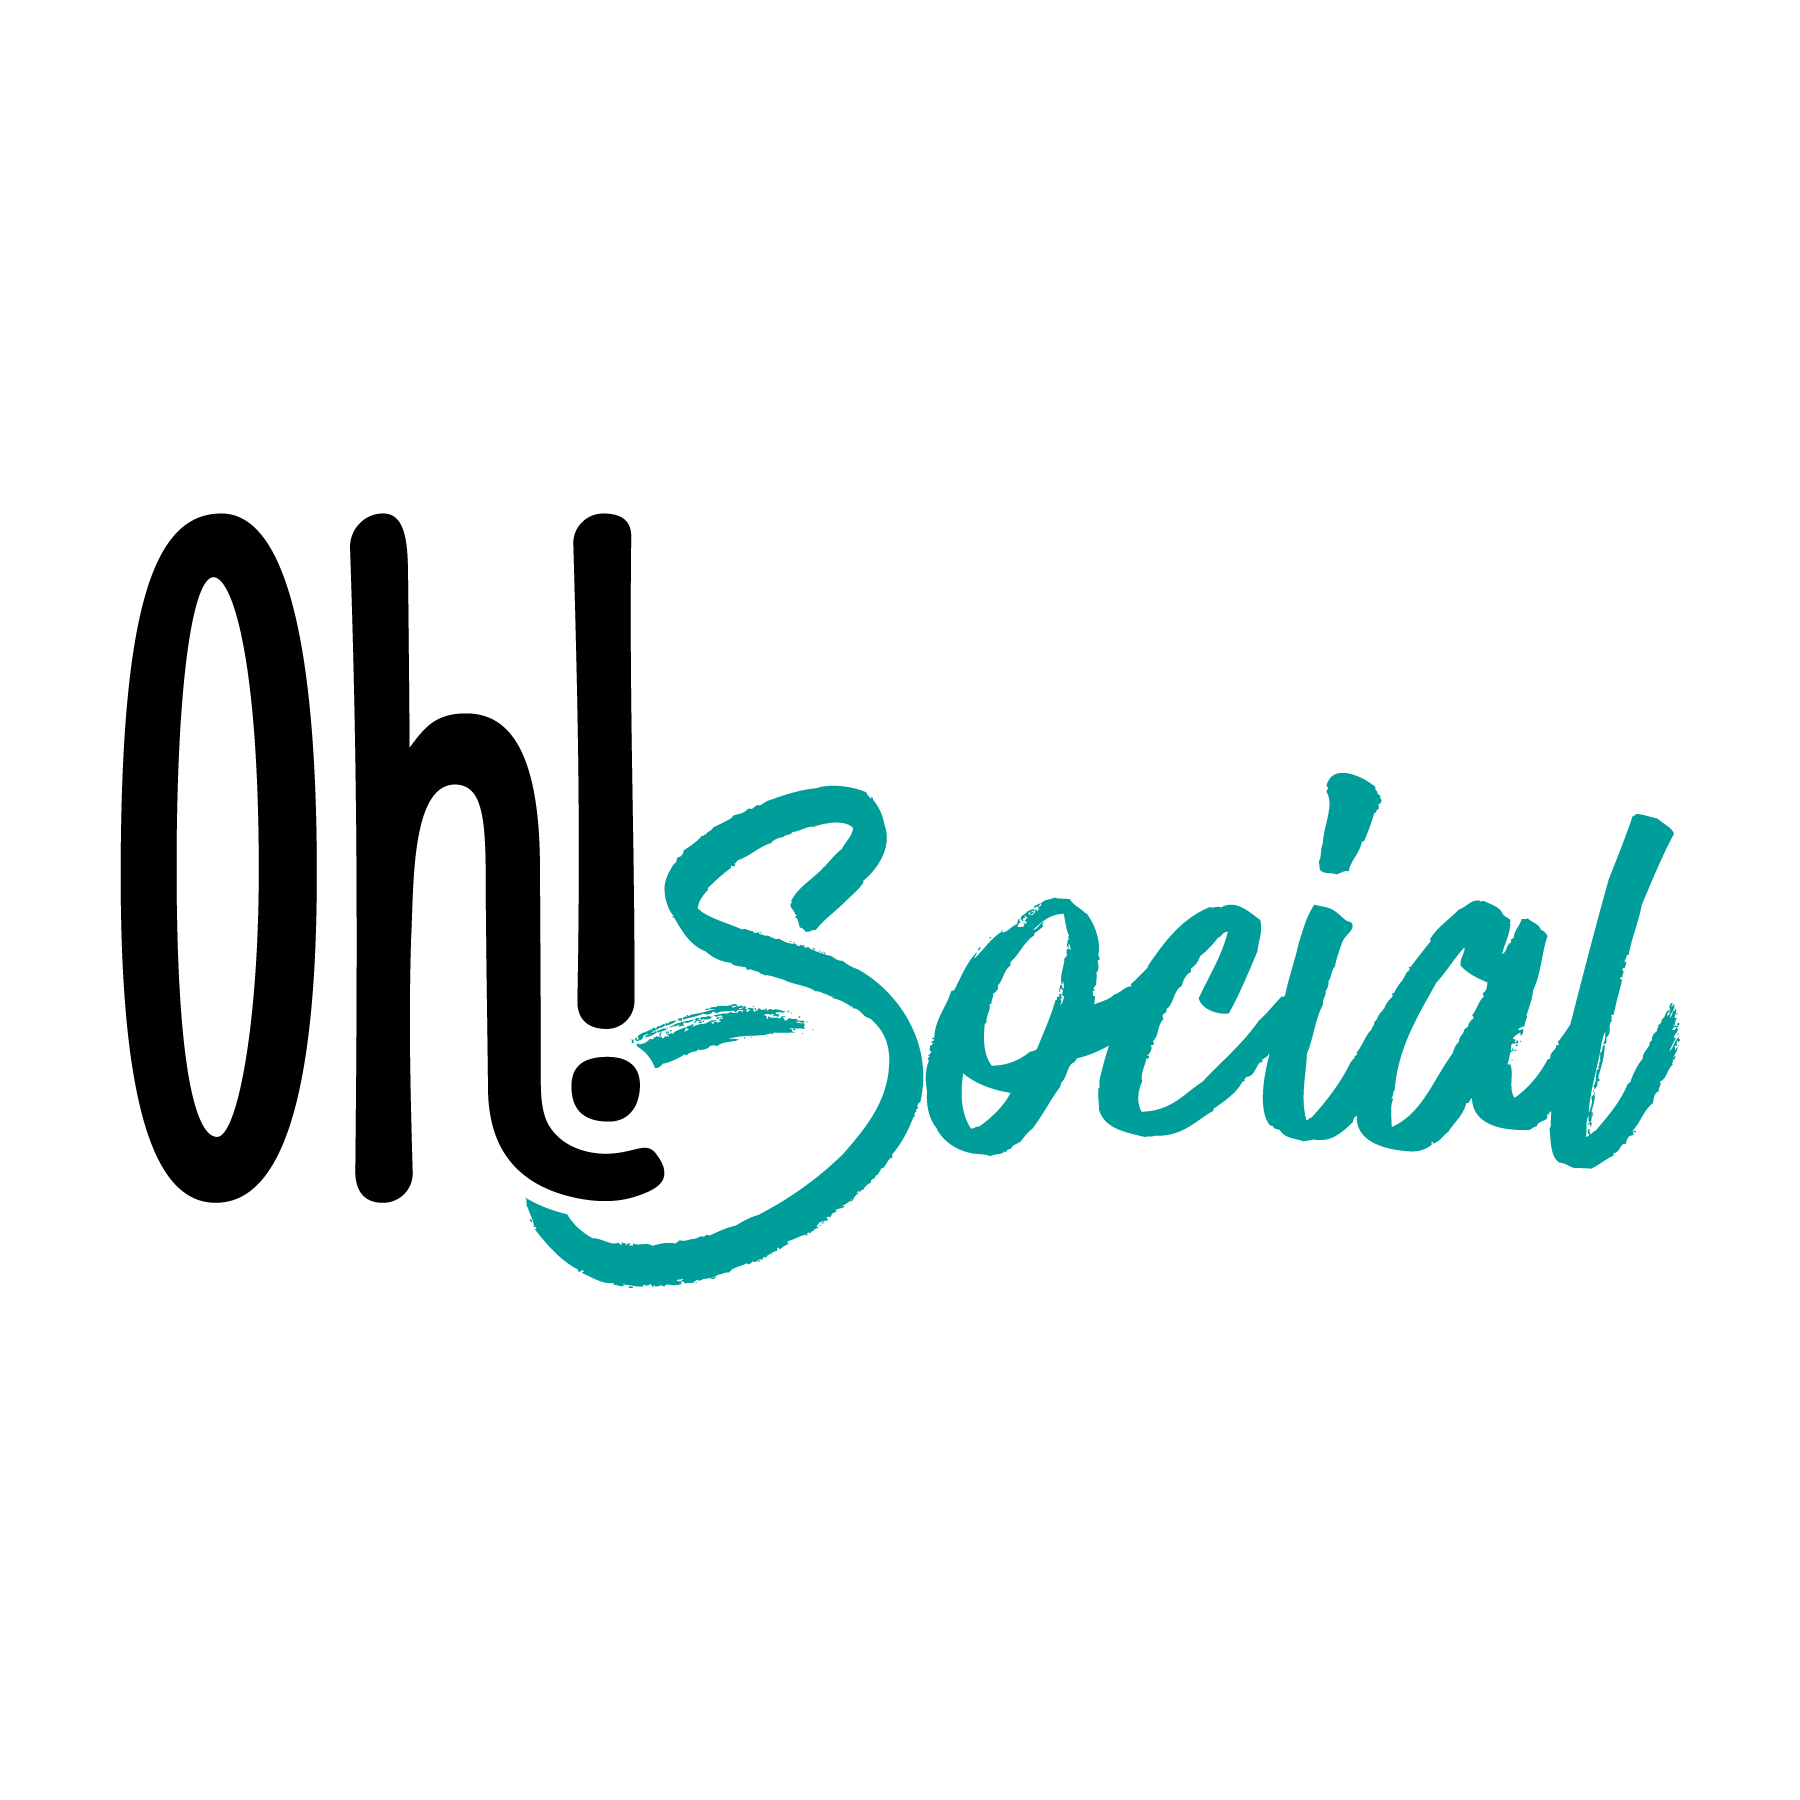 ohsocial.png